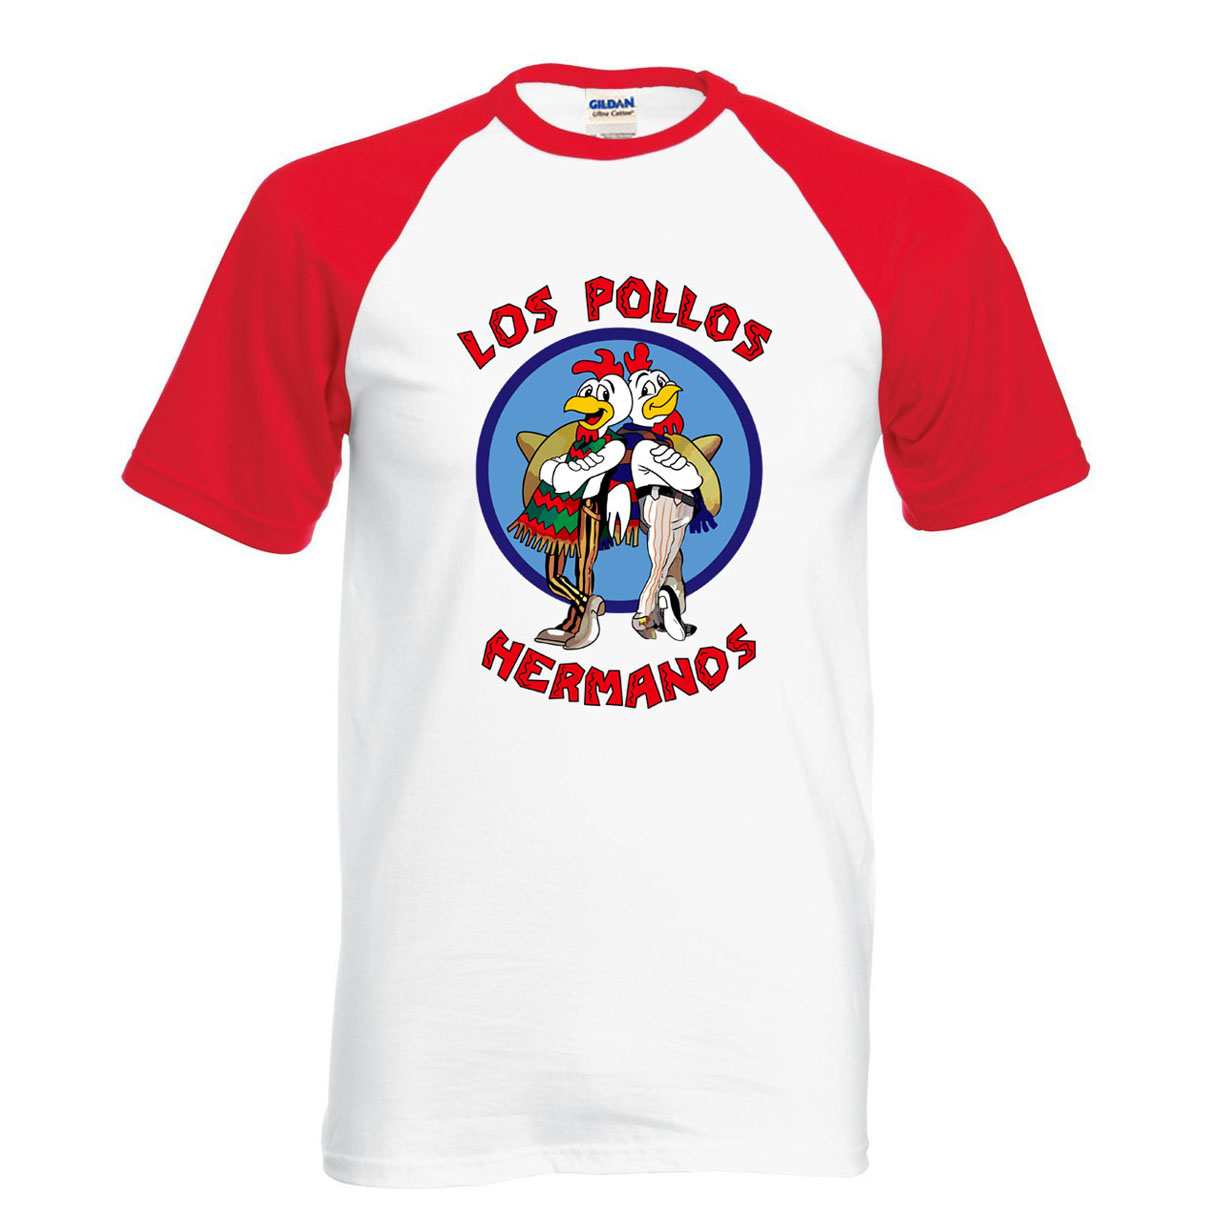 Breaking Bad Shirt LOS POLLOS Hermanos T Shirt Chicken Brothers 2019 Hot Sale Summer 100% Cotton Fashion Raglan Tee For Fans